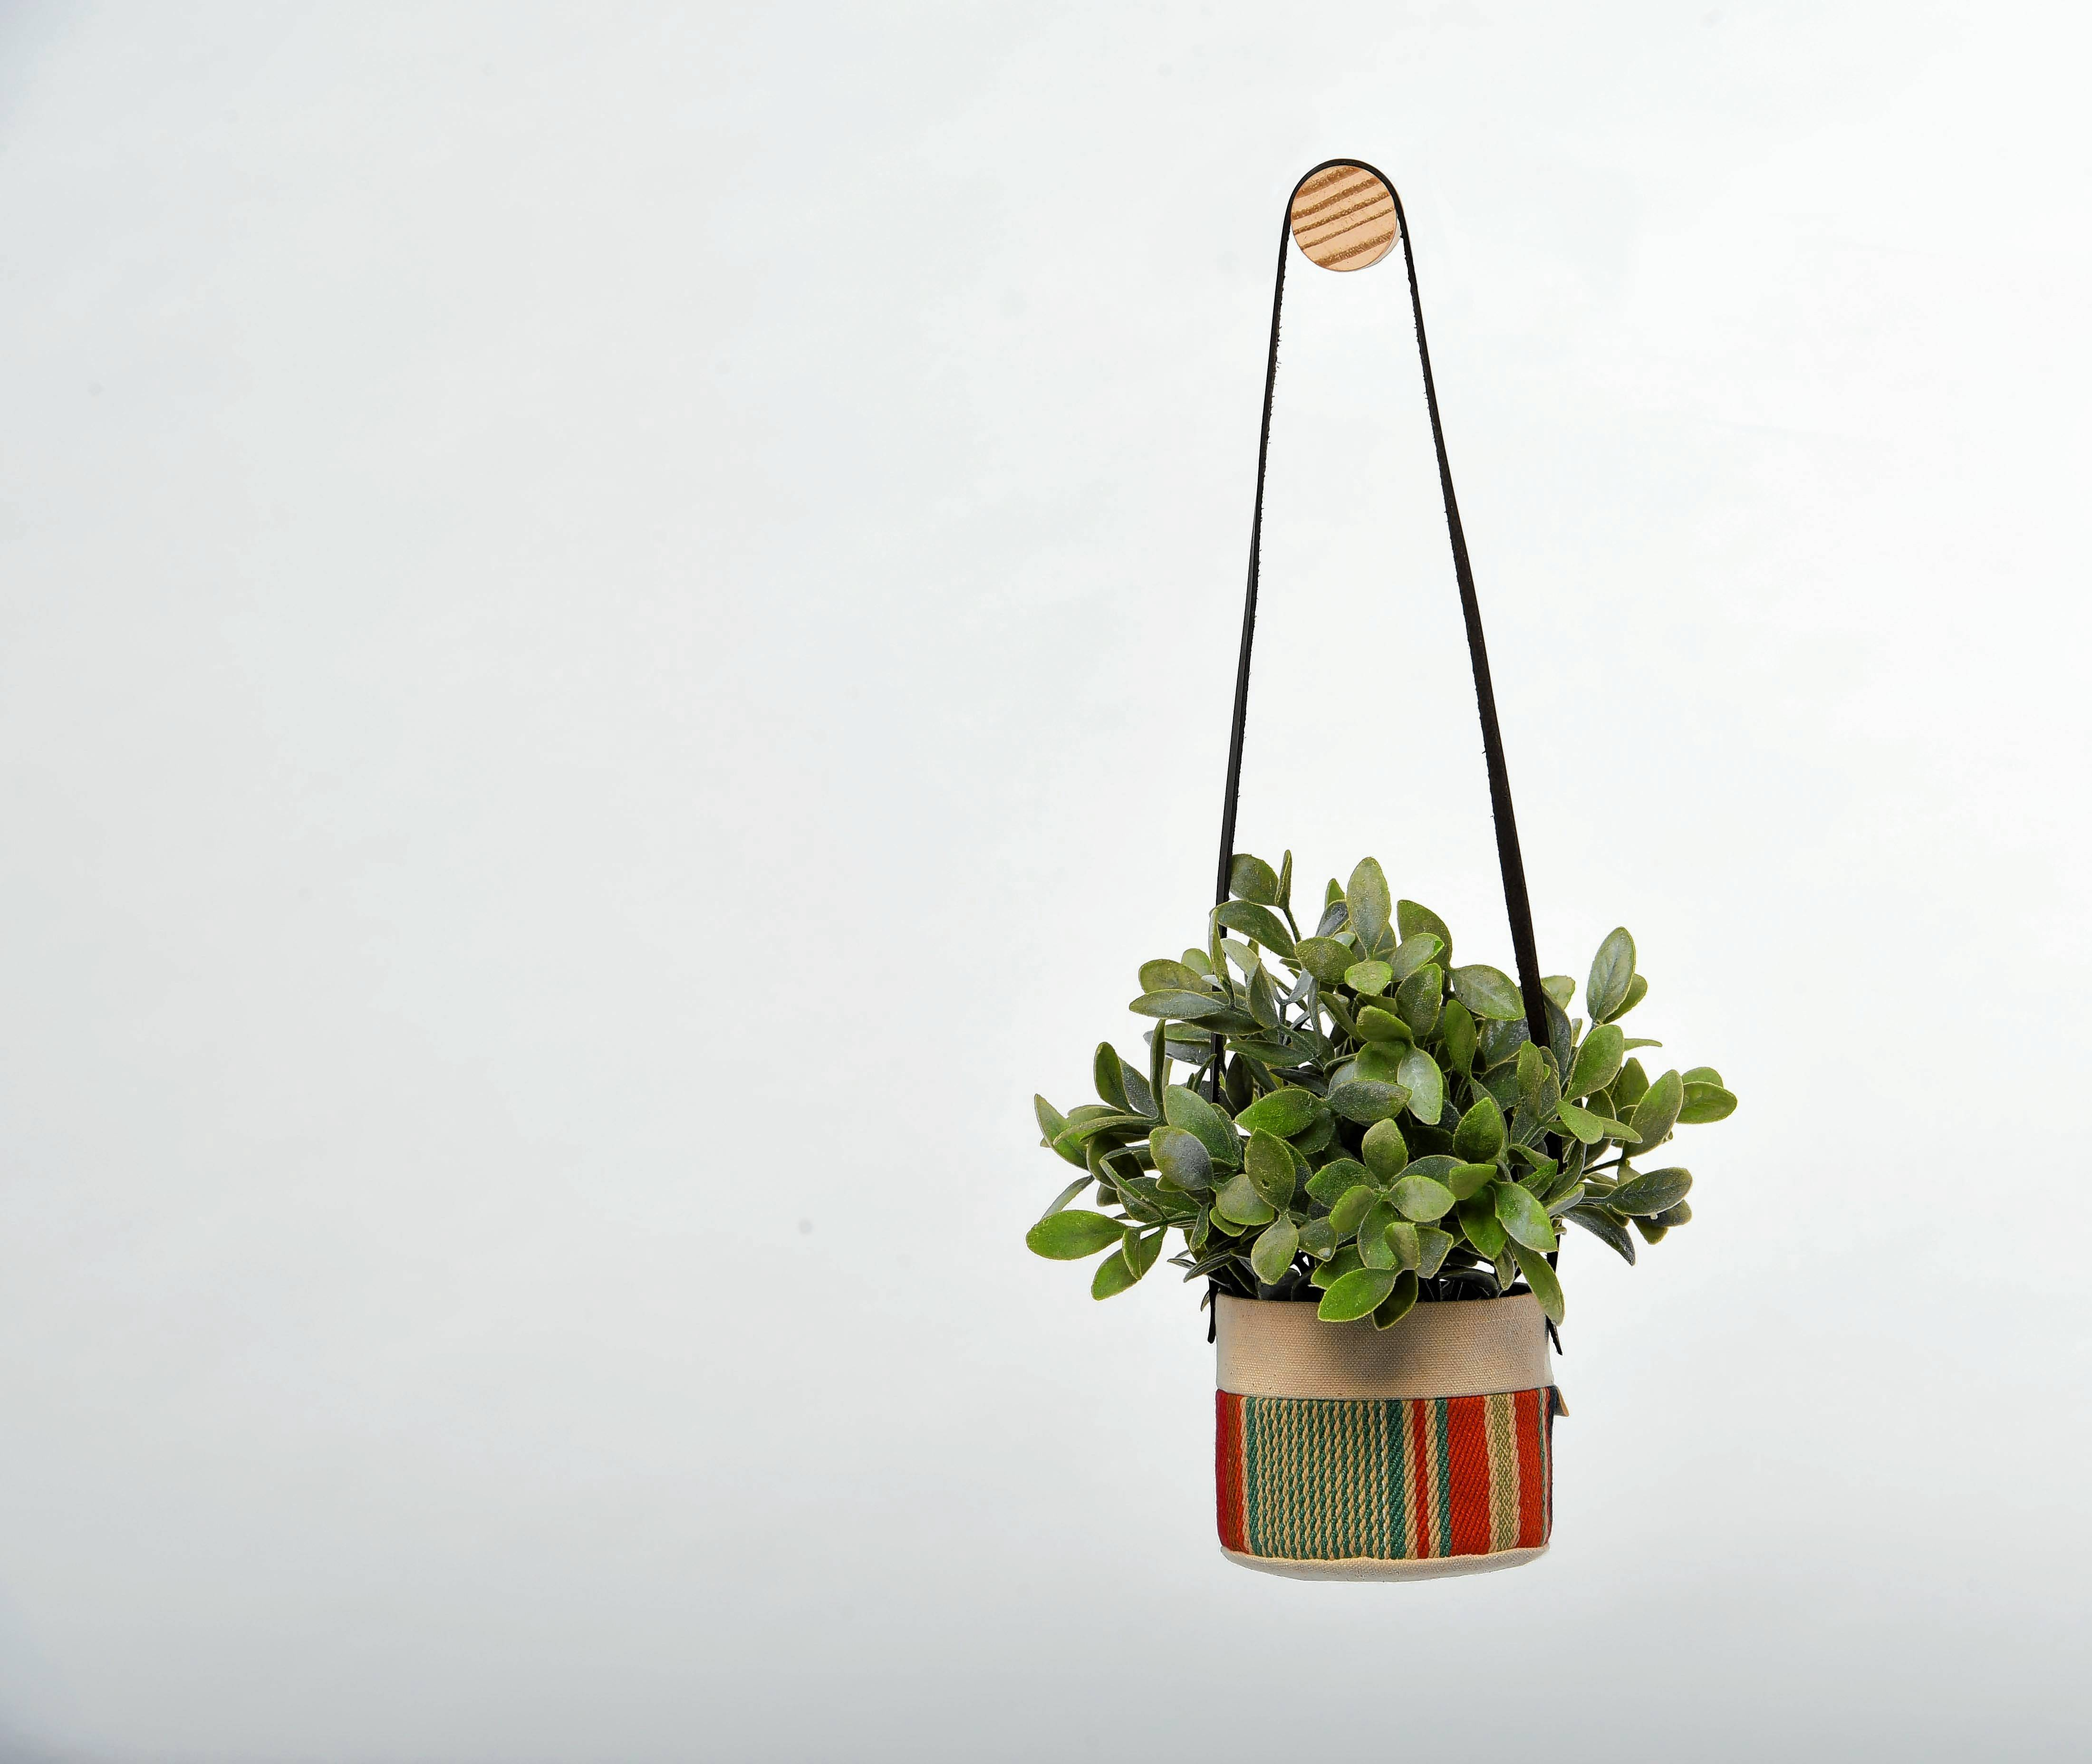 Small natural canvas hanging planter by Good Company Wares, $34, beinggoodcompany.com. MUST CREDIT: Photo for The Washington Post by Katherine Frey